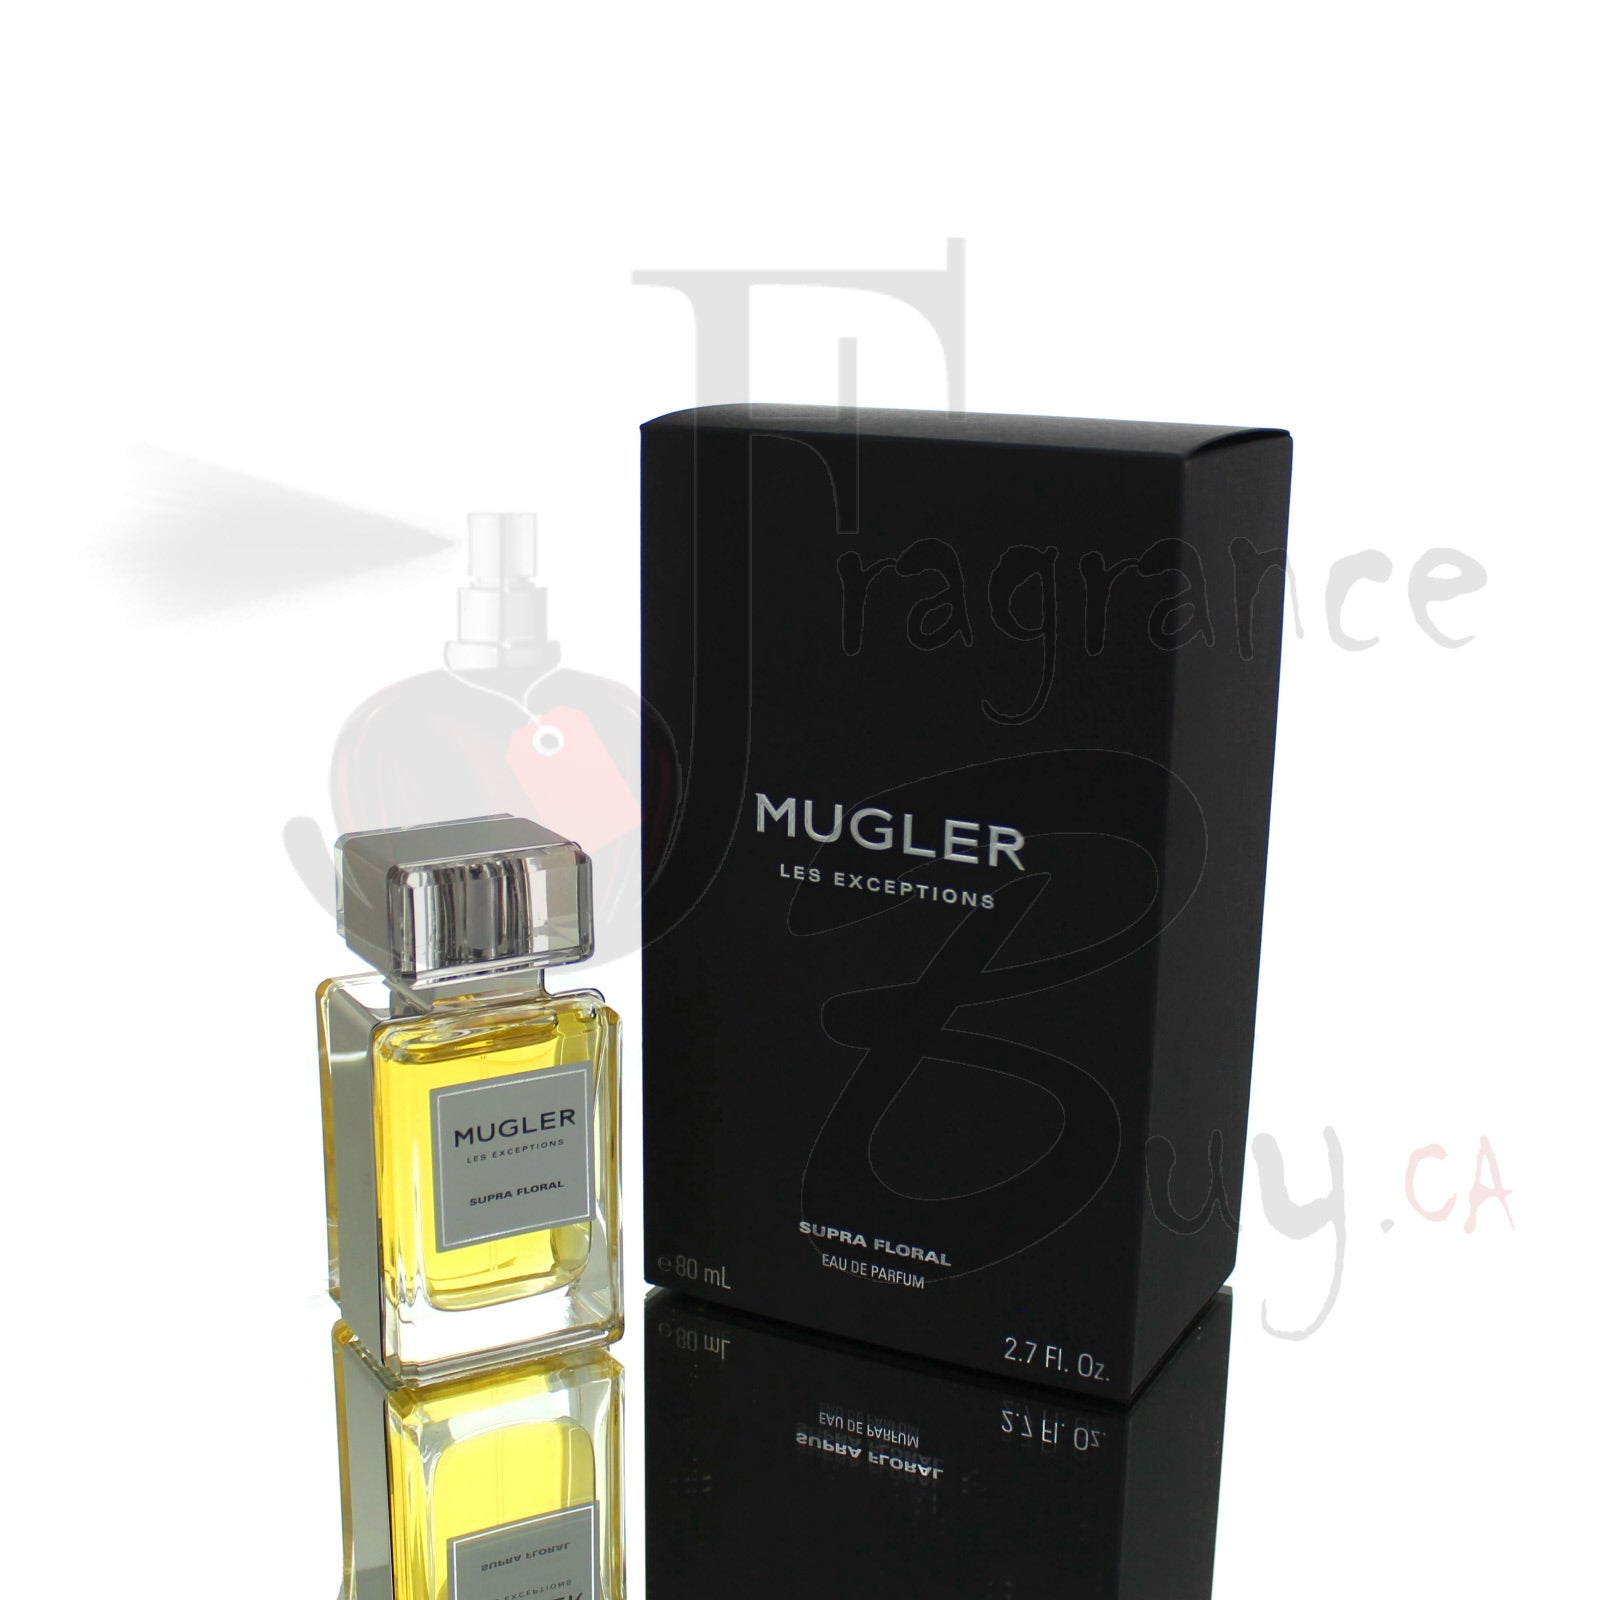 Mugler Supra Floral Les Exceptions For Man/Woman